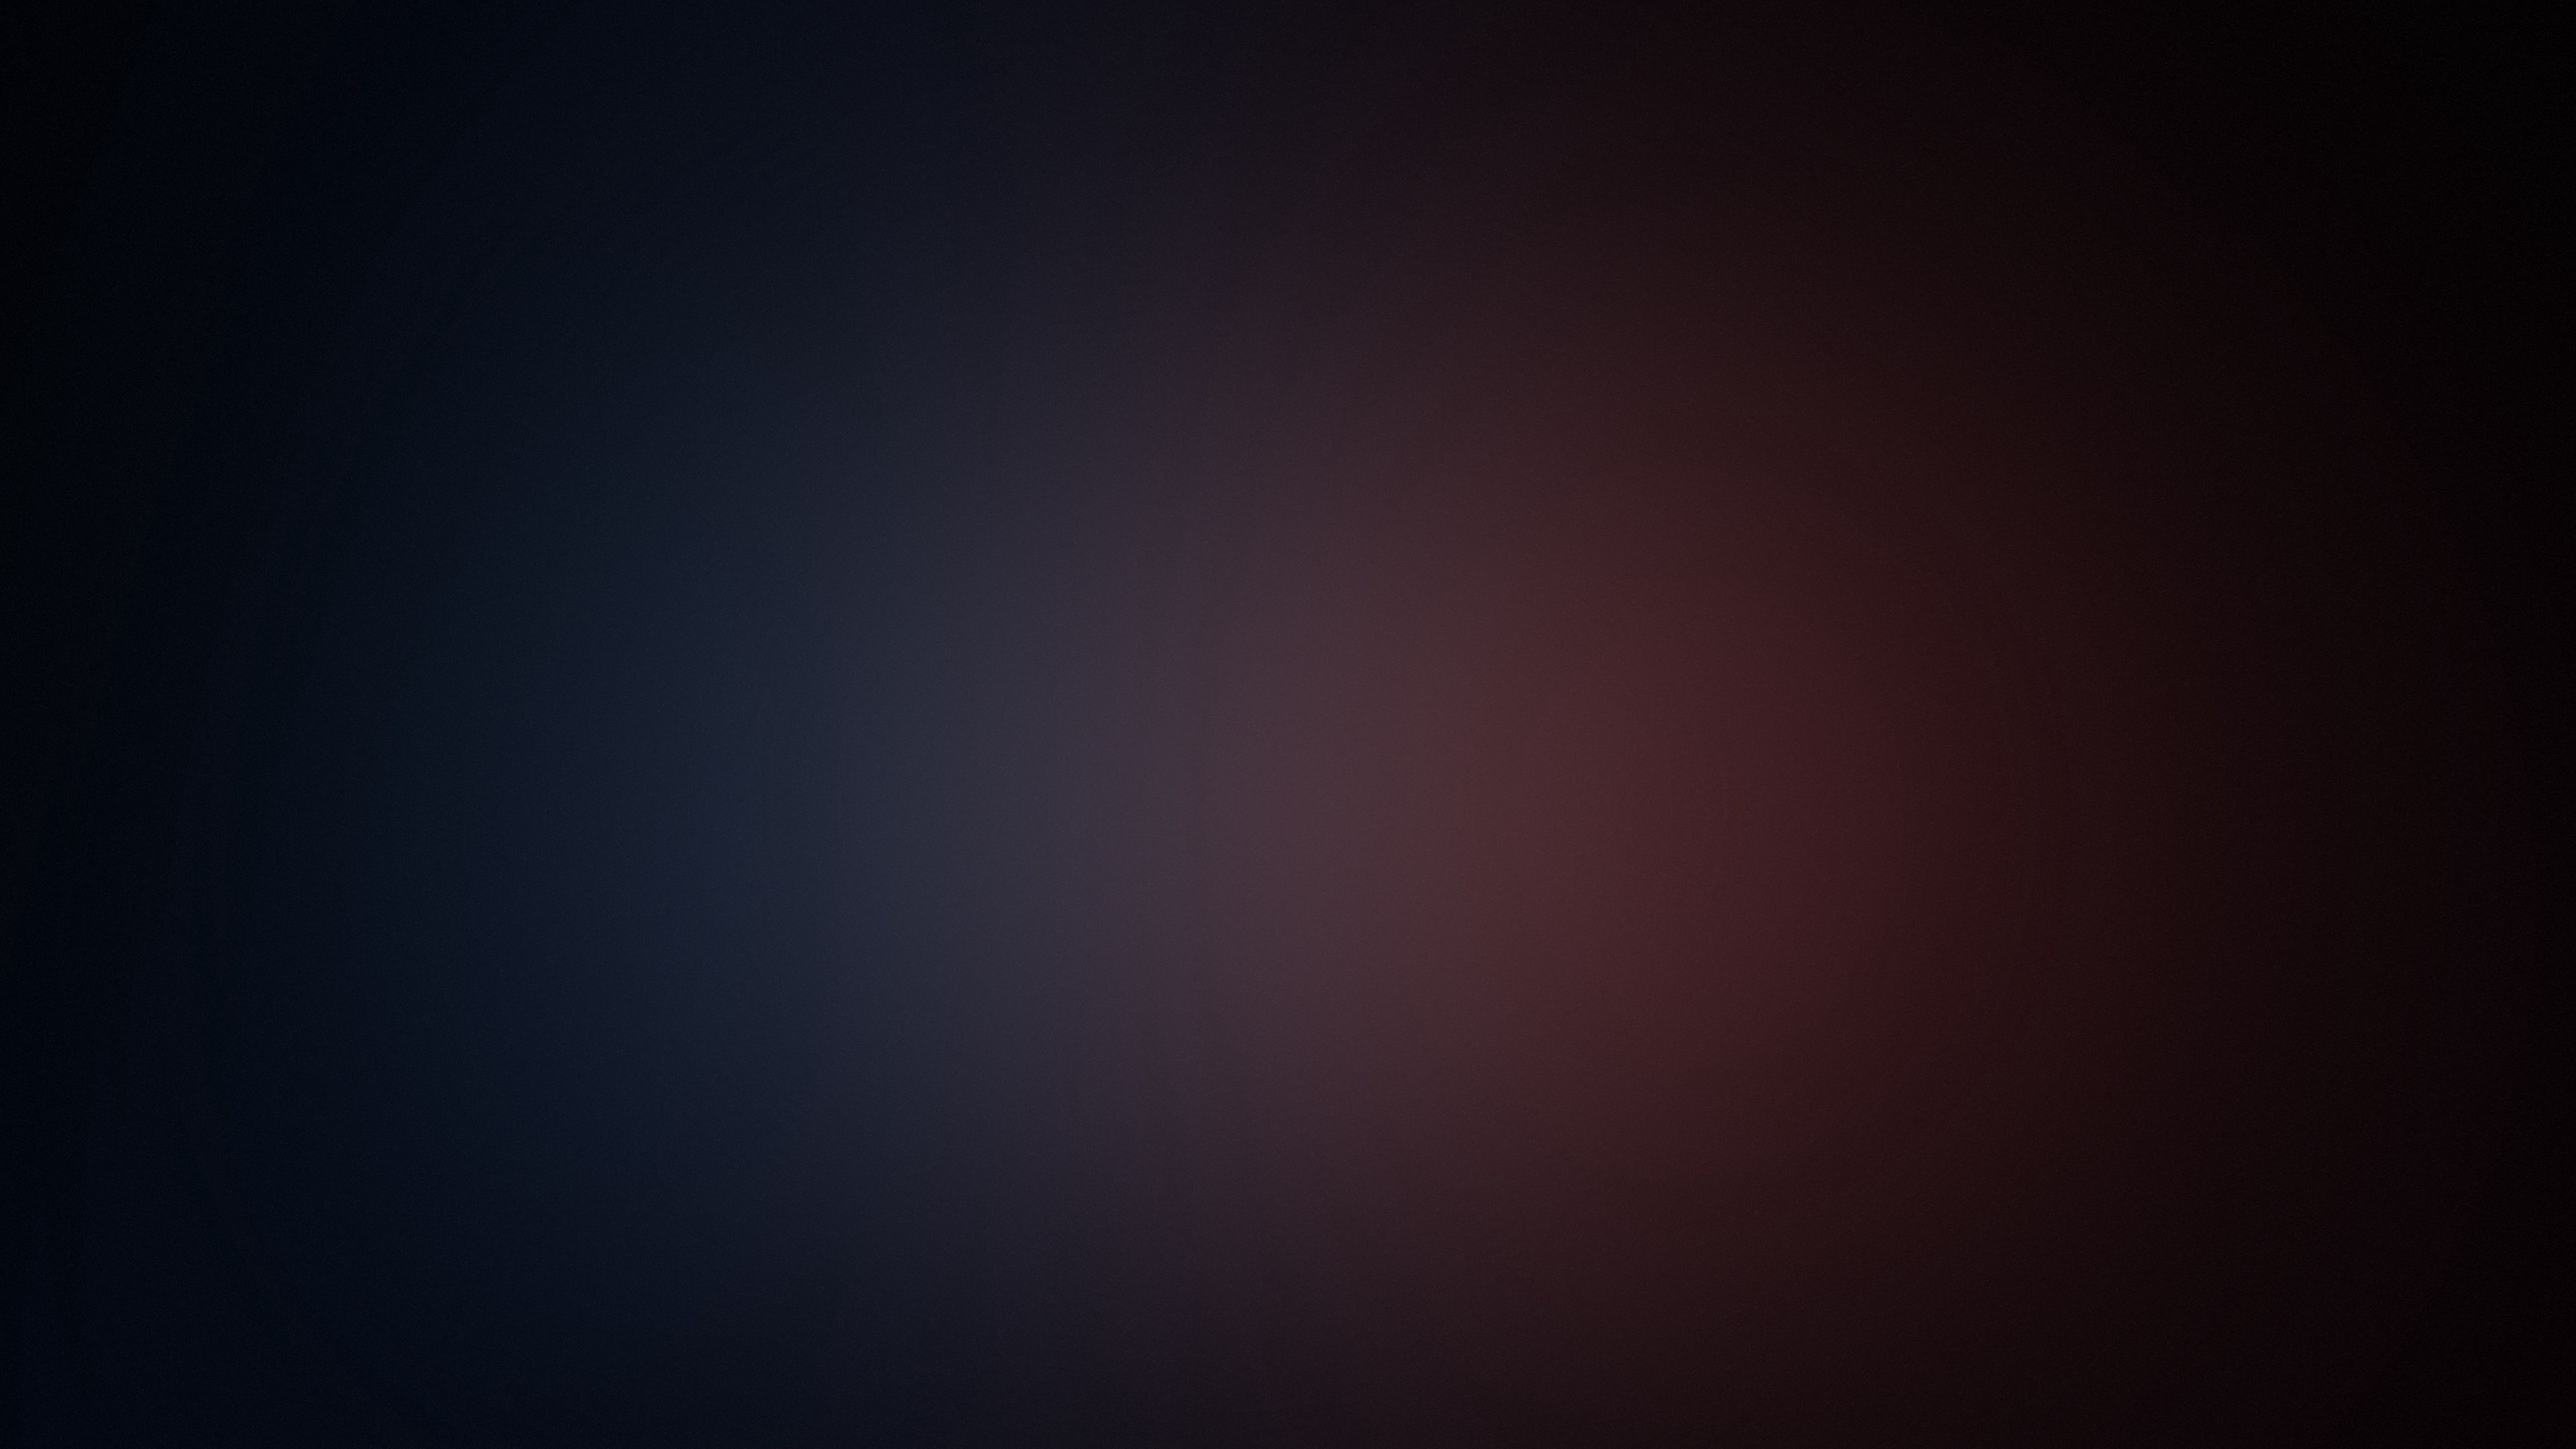 142877 download wallpaper Abstract, Minimalism, Gradient, Dark, Darkness screensavers and pictures for free